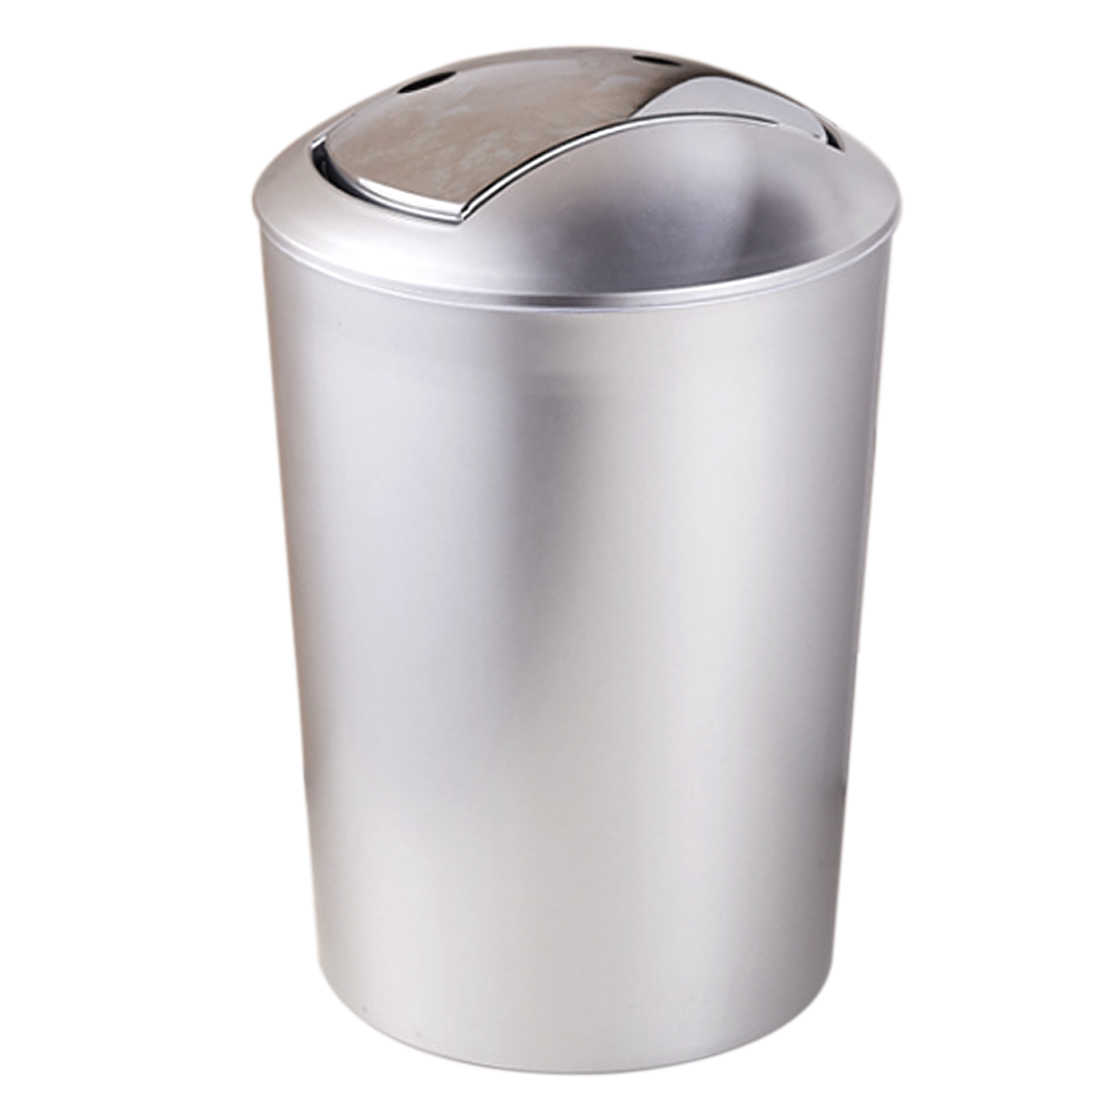 HIPSTEEN 10L European Style Garbage Can Plastic Trash Wastebin With Lid  Living Room Kitchen Trash Cans